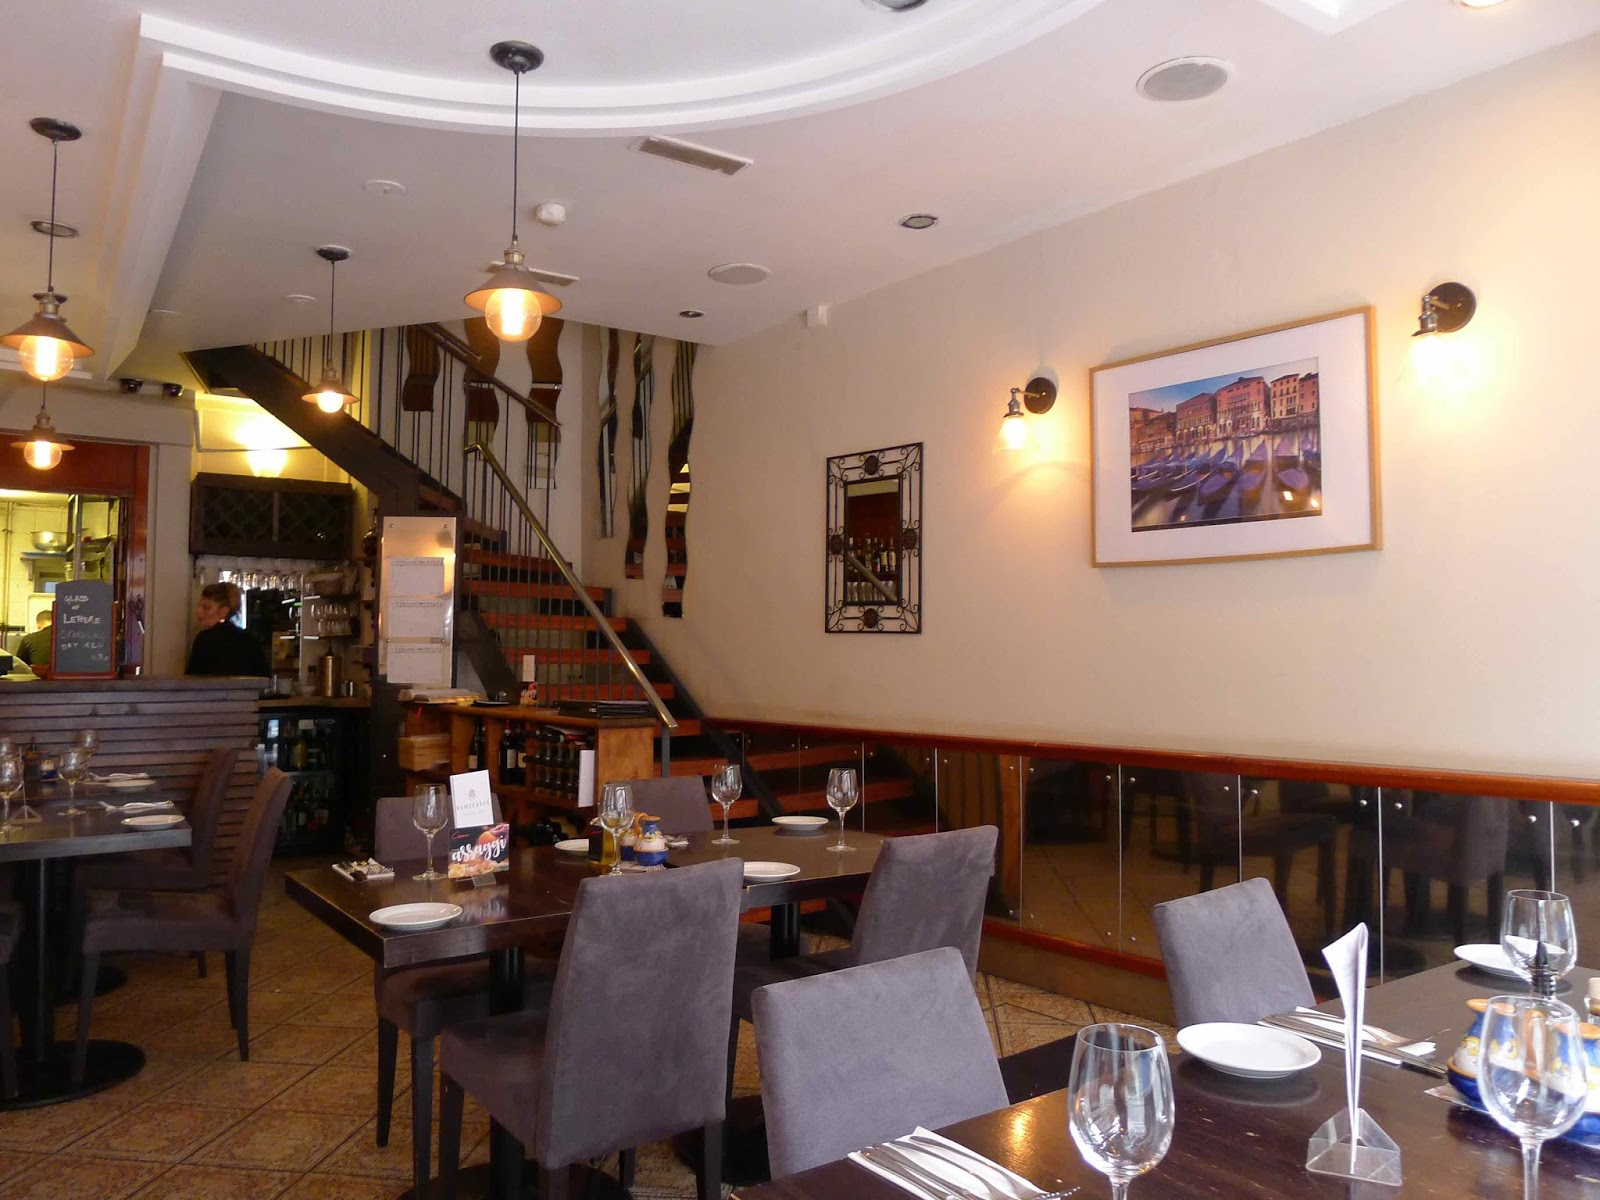 Padella Sister Restaurant Gourmet Gorro Cardiff Food Blog Featuring Restaurant Reviews